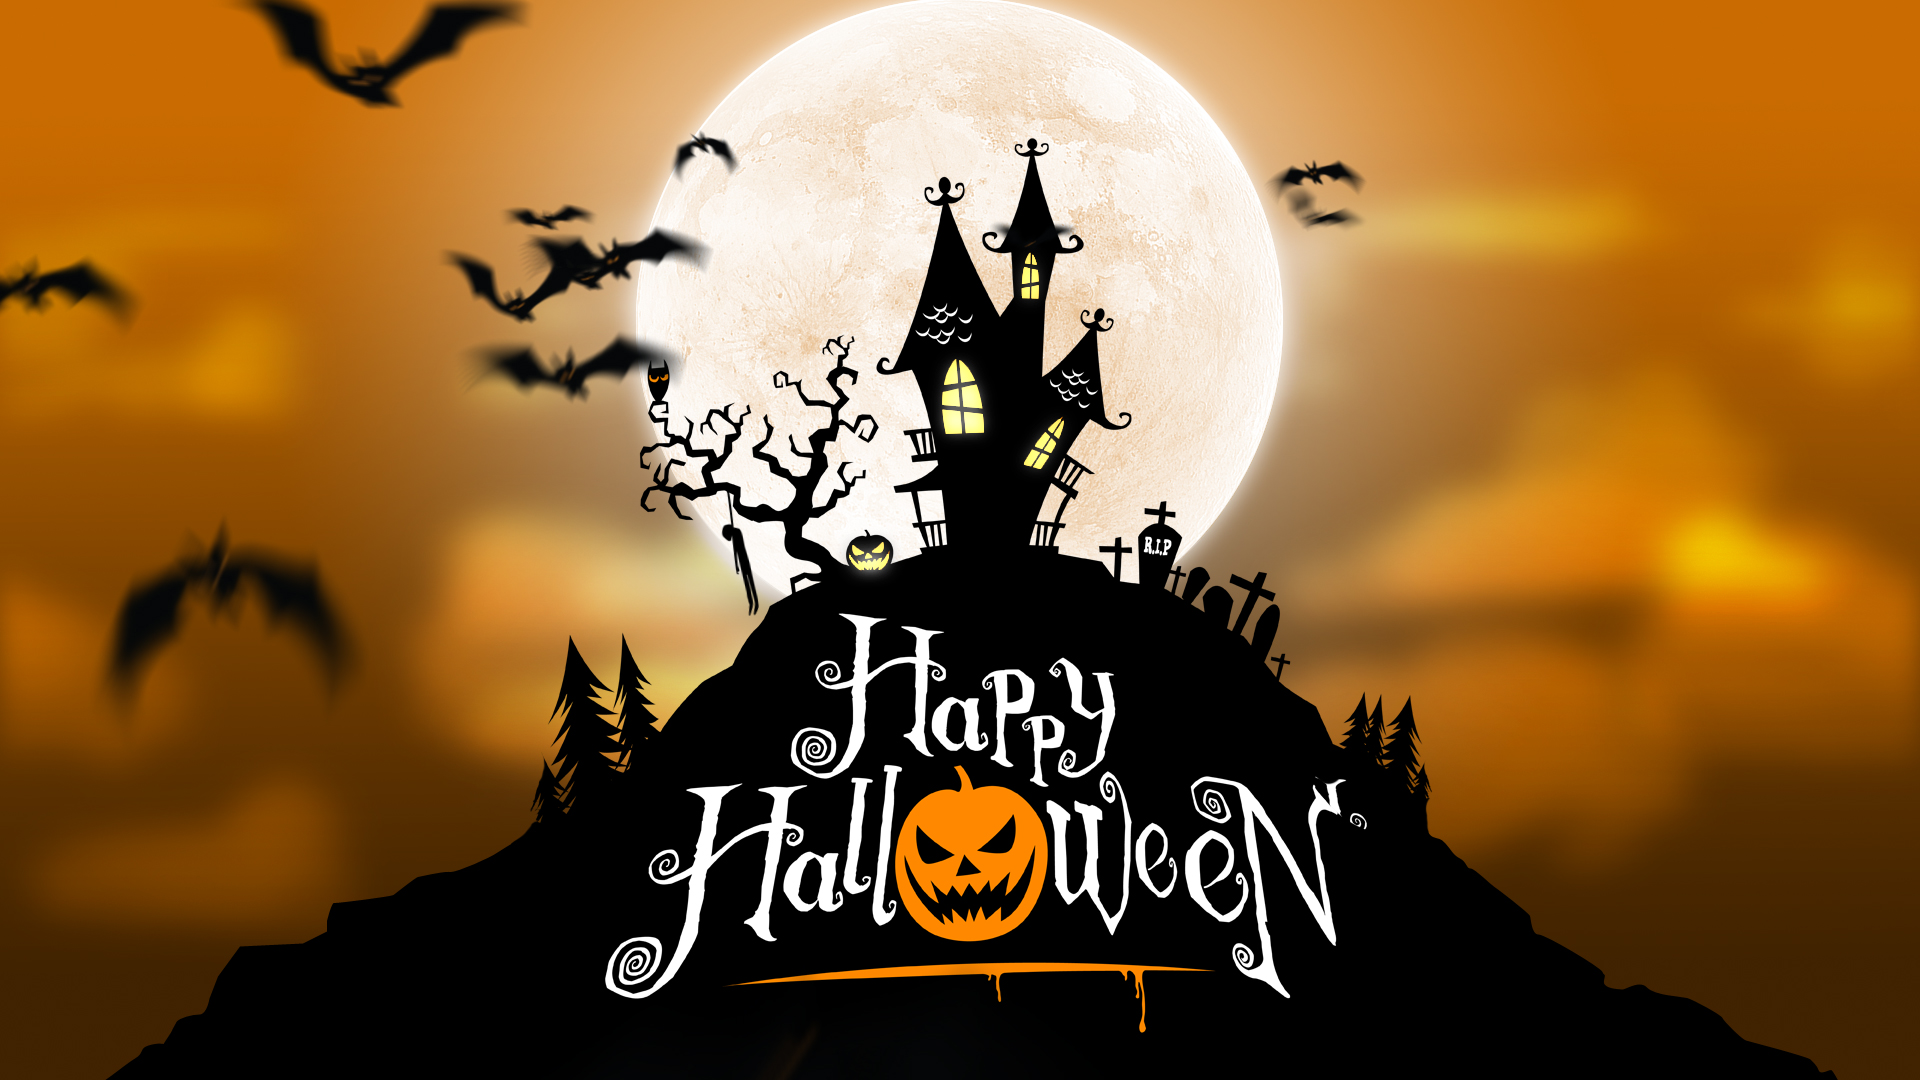 Halloween 1 After Effects Template   $45   MORE INFO   A spooky halloween background of a haunted house with a full moon in the background. A group of creepy bats flocks through the scene with animated timelapse clouds. The scene also features a bird with blinking eyes, flickering windows and pumpkins and a swinging hung corpse.